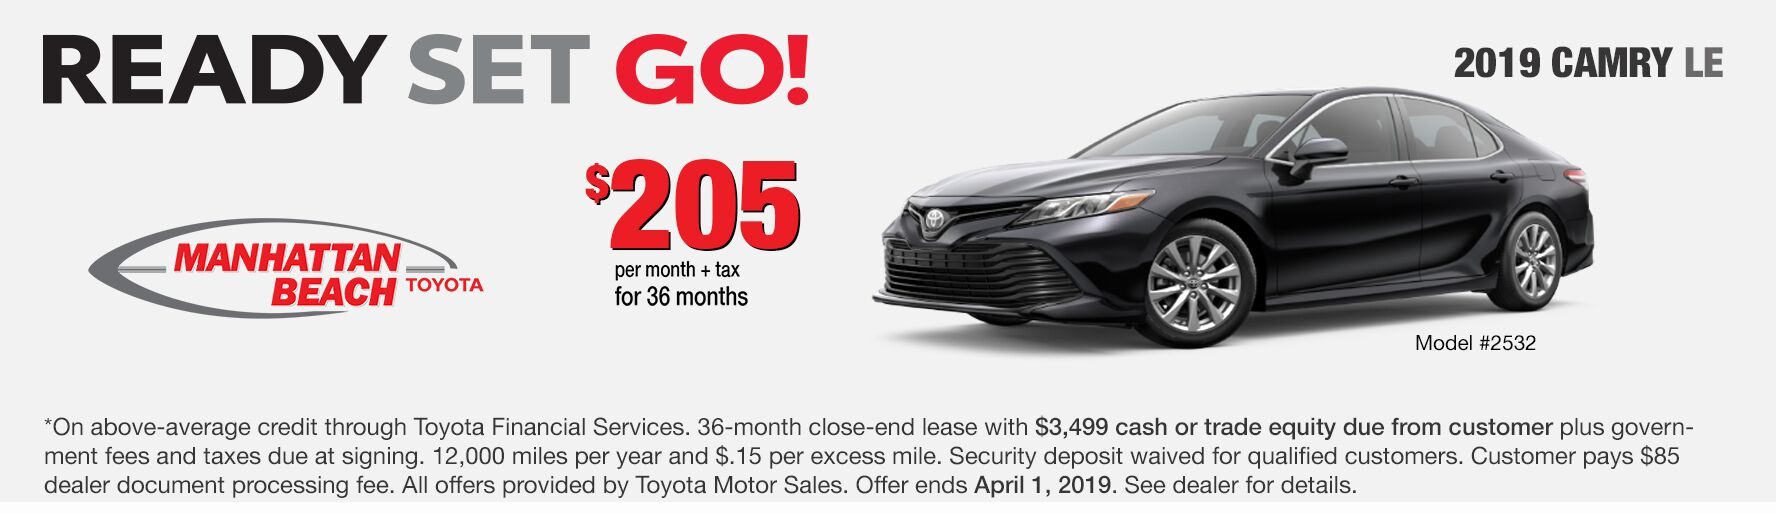 Camry LE Lease Special